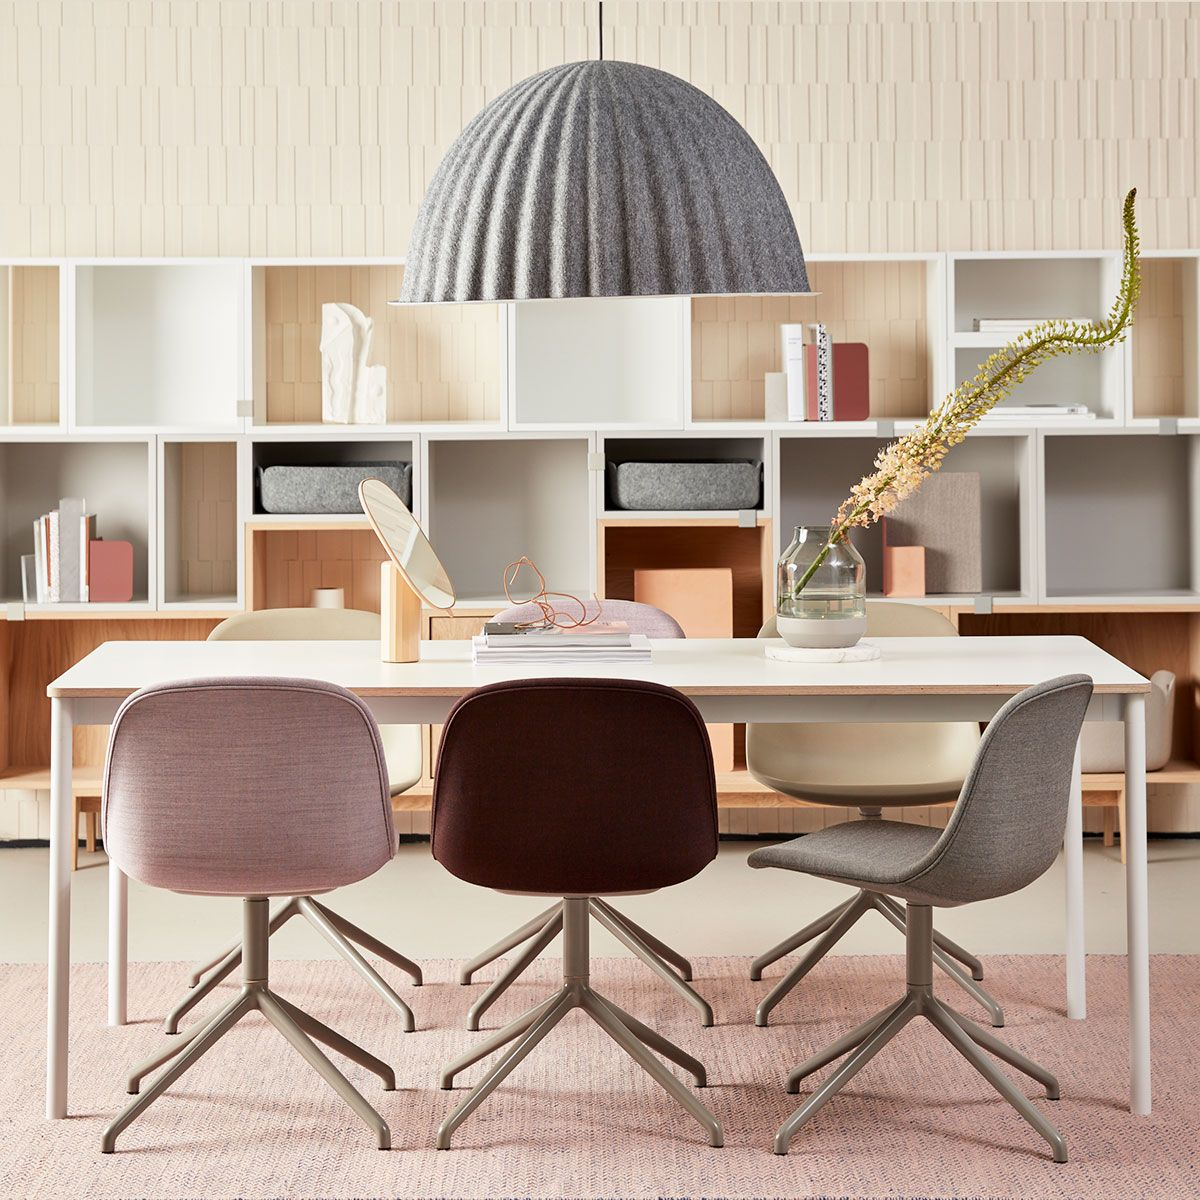 The Fiber Side Chair With Swivel Base Carries A Formal Professional Expression High Office Furniture Design Office Interior Design Office Furniture Solutions